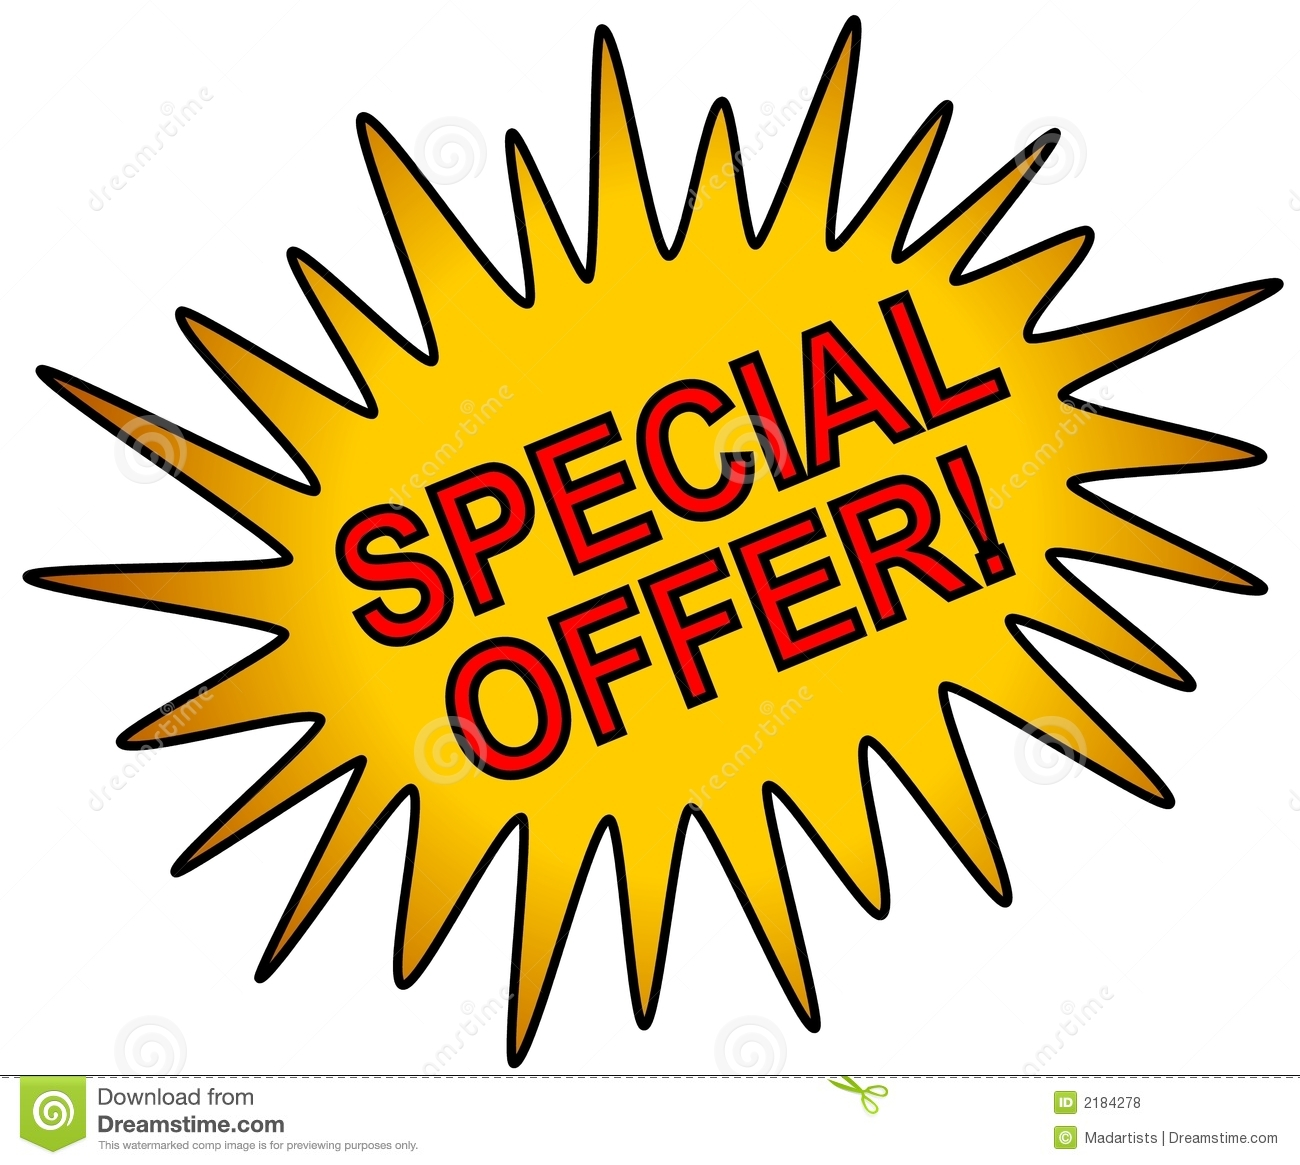 special offer web icon gold royalty free stock photos Thumbs Up Thumbs Down Clip Art to the Side Thumbs Bote Clip Art Thumbs Up Thumbs Down